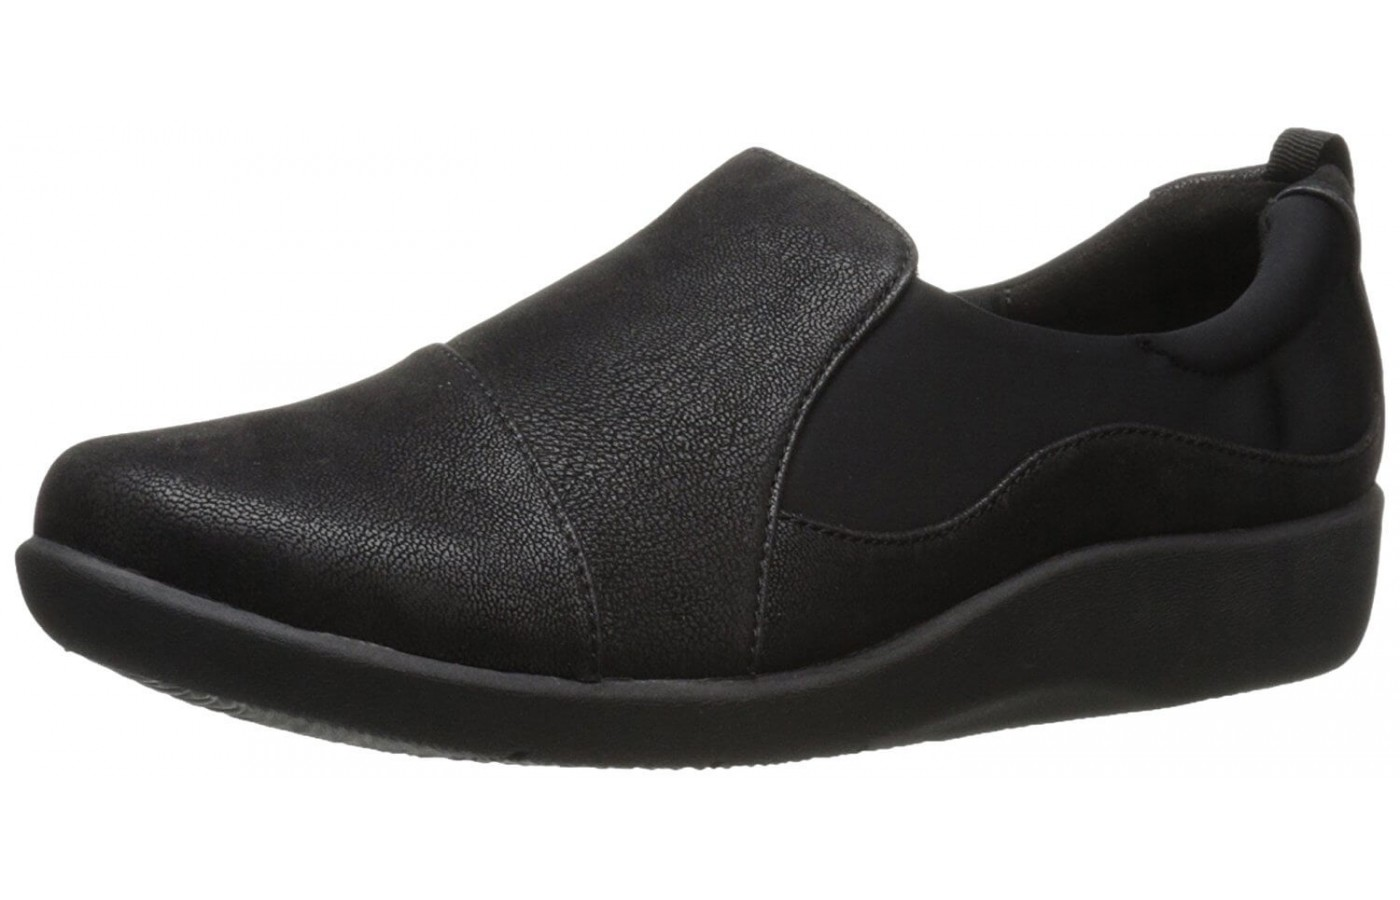 Clarks Sillian Paz Cloudstepper Angled View